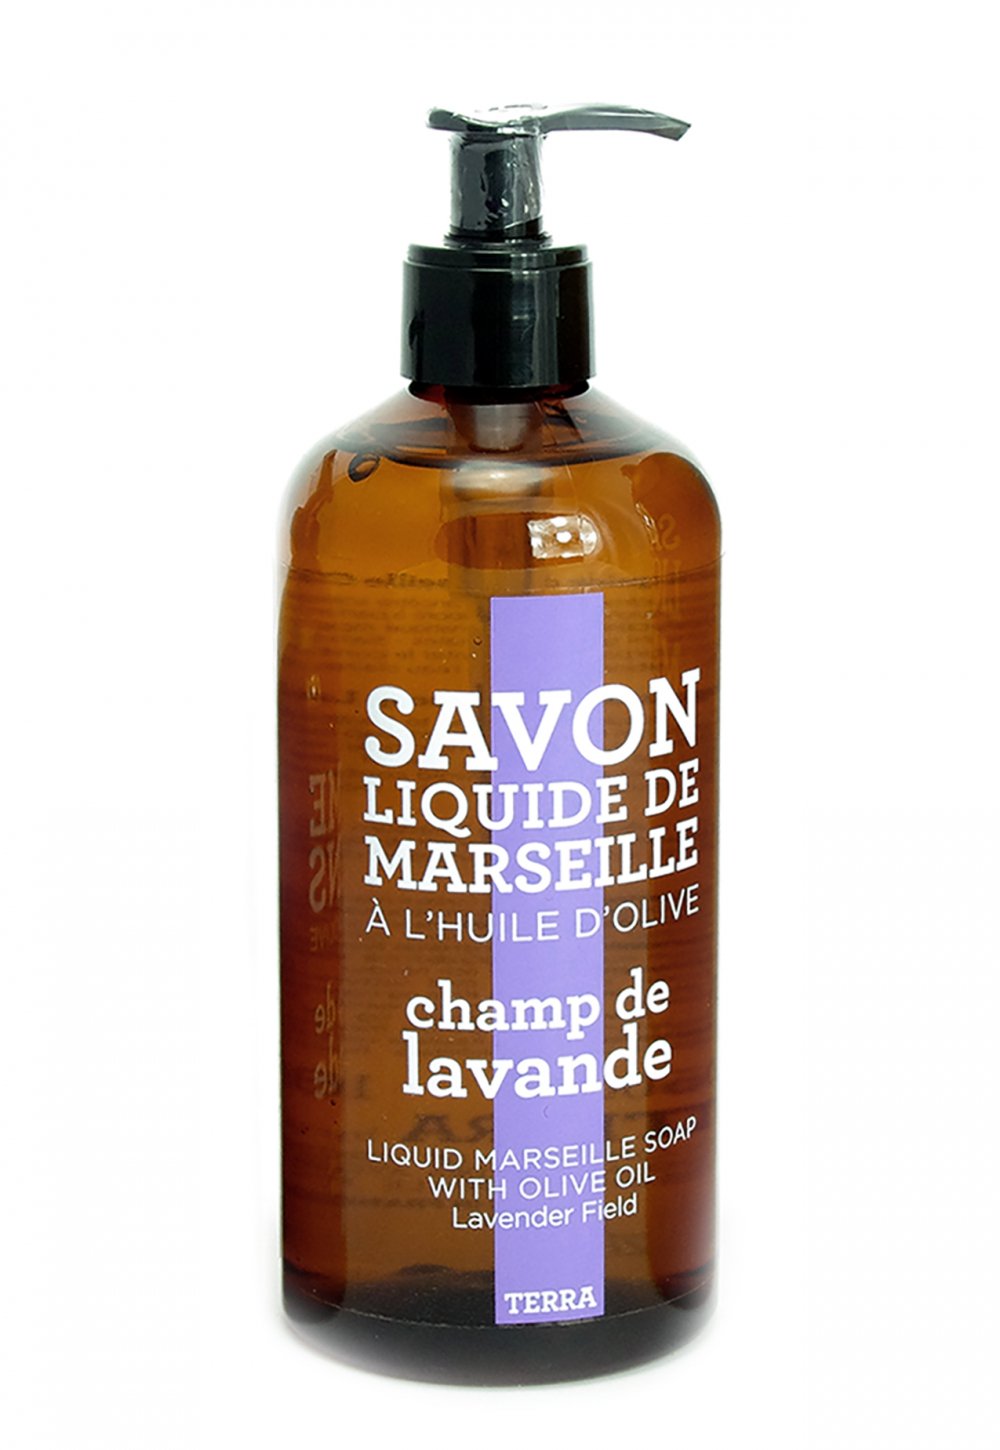 Savon de Marseille - Saponified in a cauldron according  to tradition, as does its ancestor, the authentic cube from Marseille, this liquid soap is made from olive and coconut oils and naturally glycerined. Free of artificial colouring and free of animal fats - Parabin free. Available scents: Lemon Verbena, Lavender Field, Candied Orange, and Fig Leaf